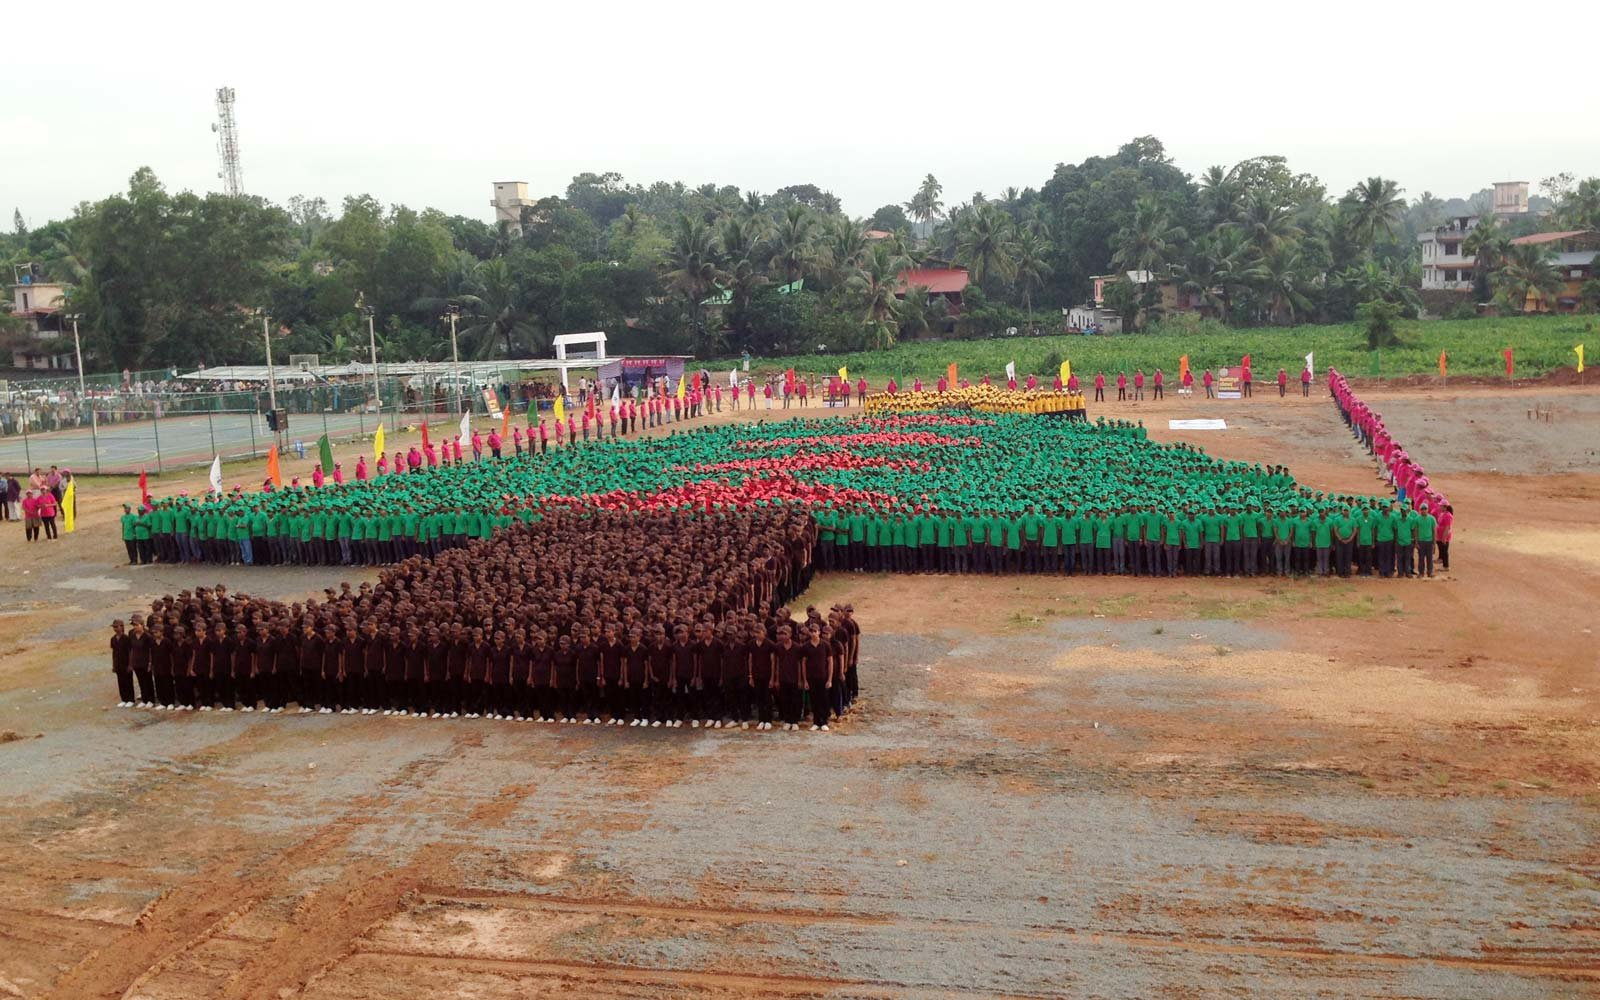 The Largest Human Christmas Tree in Chengannur,  India